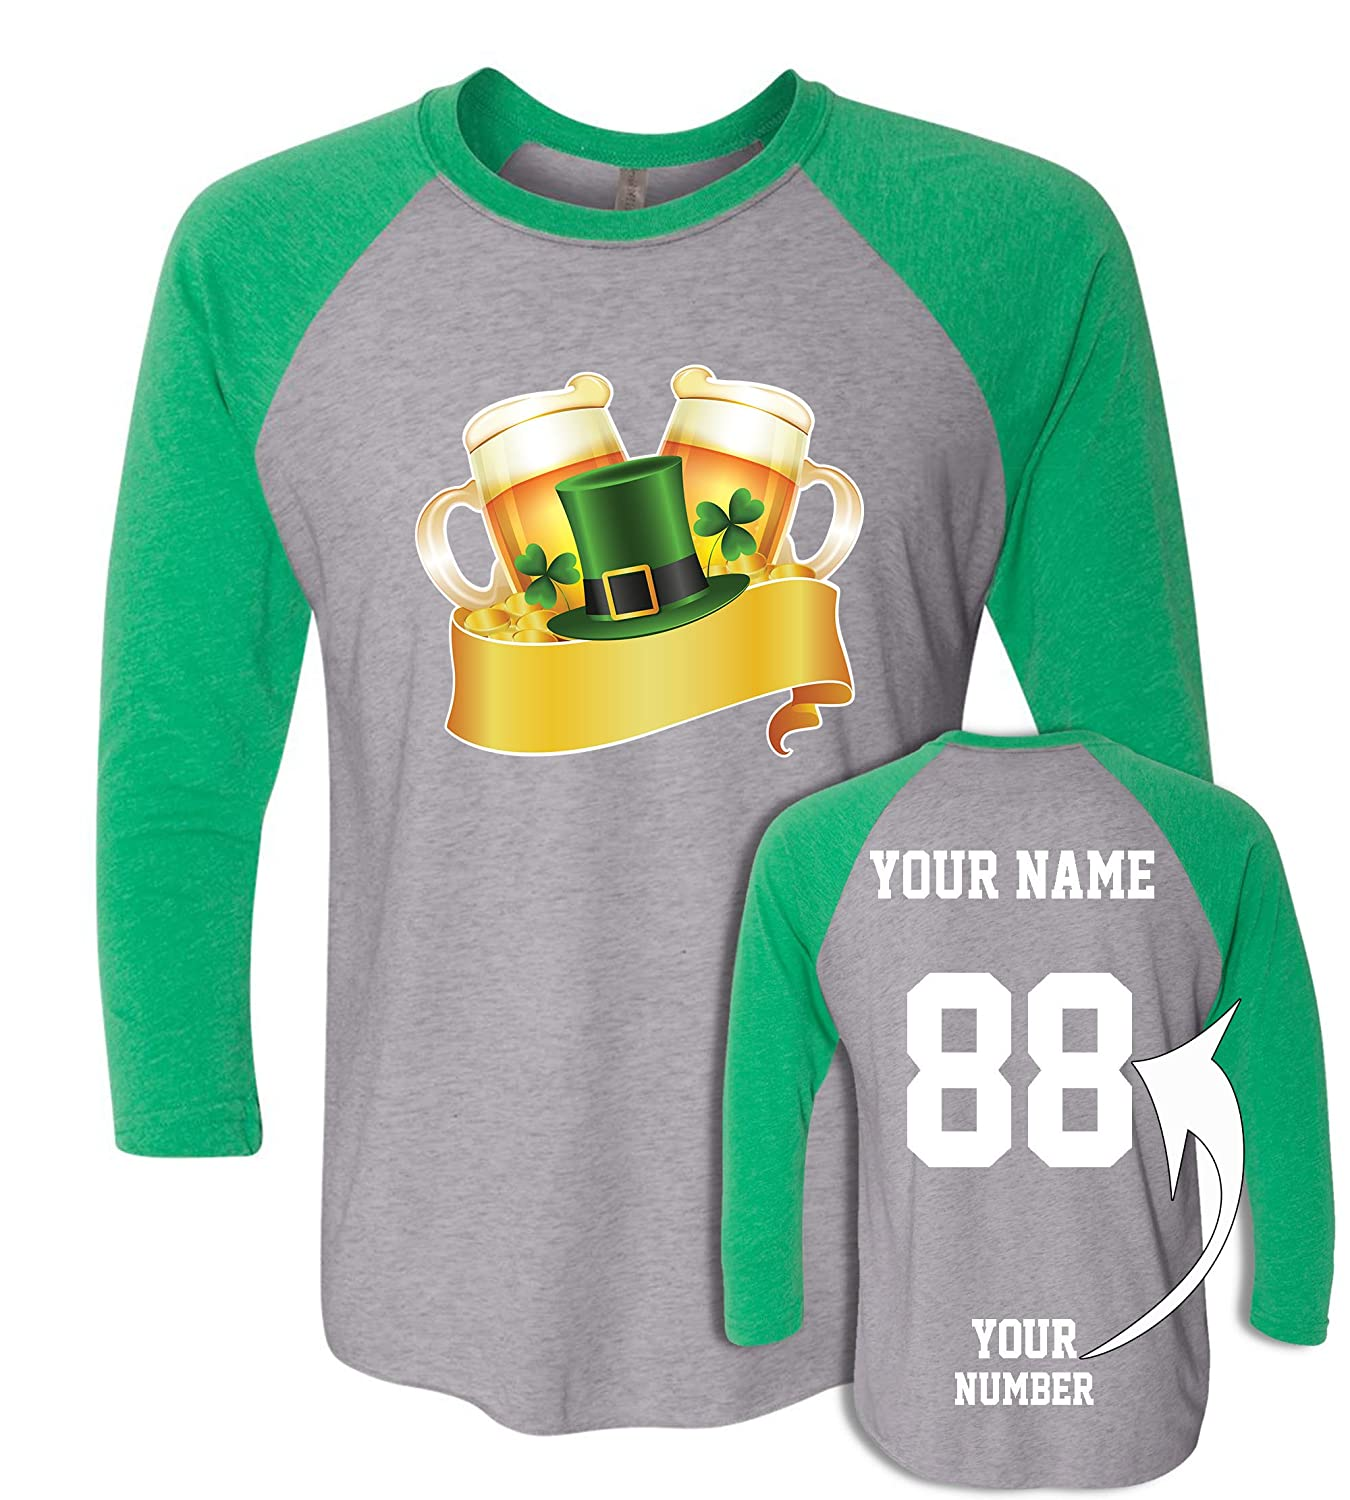 82474e58 50% Polyester/25% Combed Ringspun Cotton/25% Rayon Fabric Made in USA and  Imported DESIGN YOUR OWN St. Patricks Day costume with your name and number